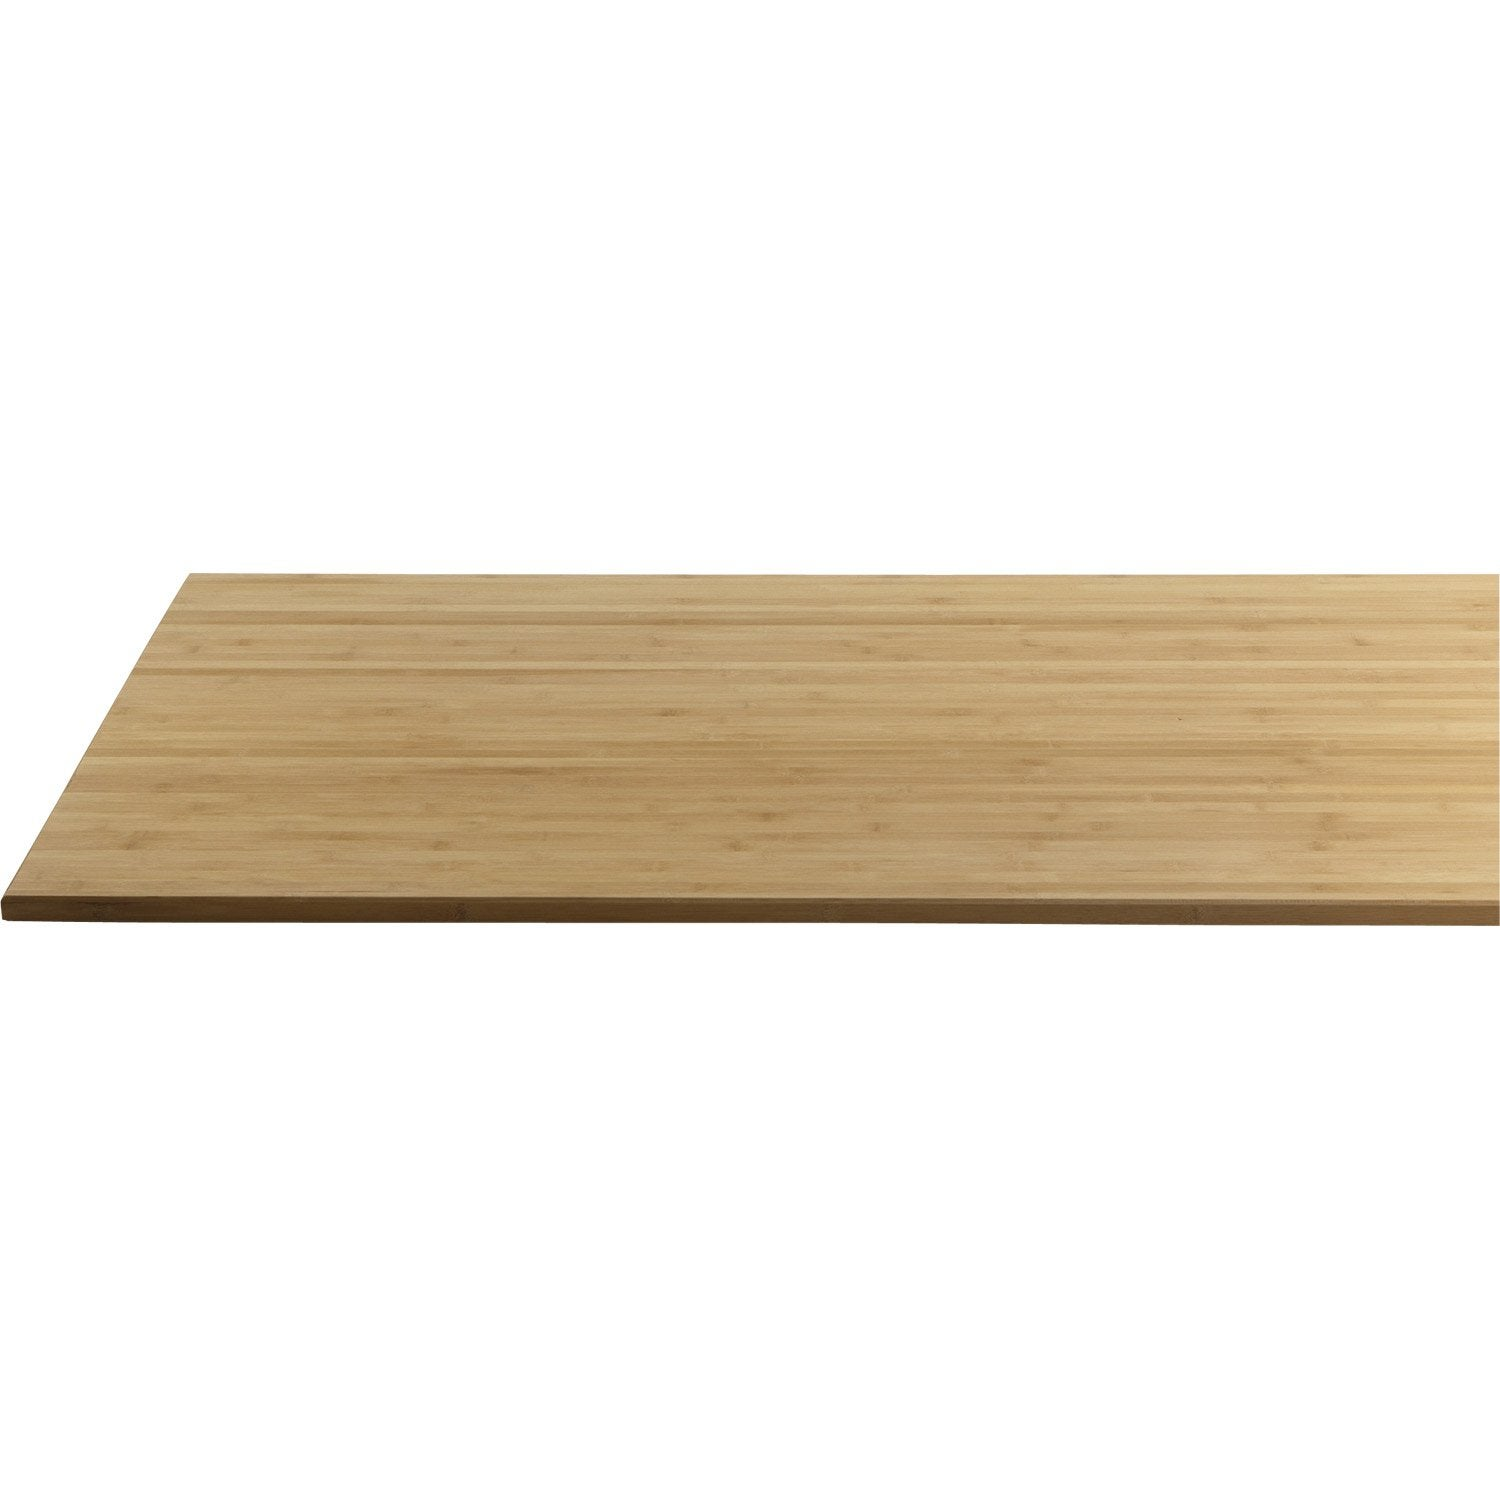 Plateau De Table Bambou X Cm X Mm